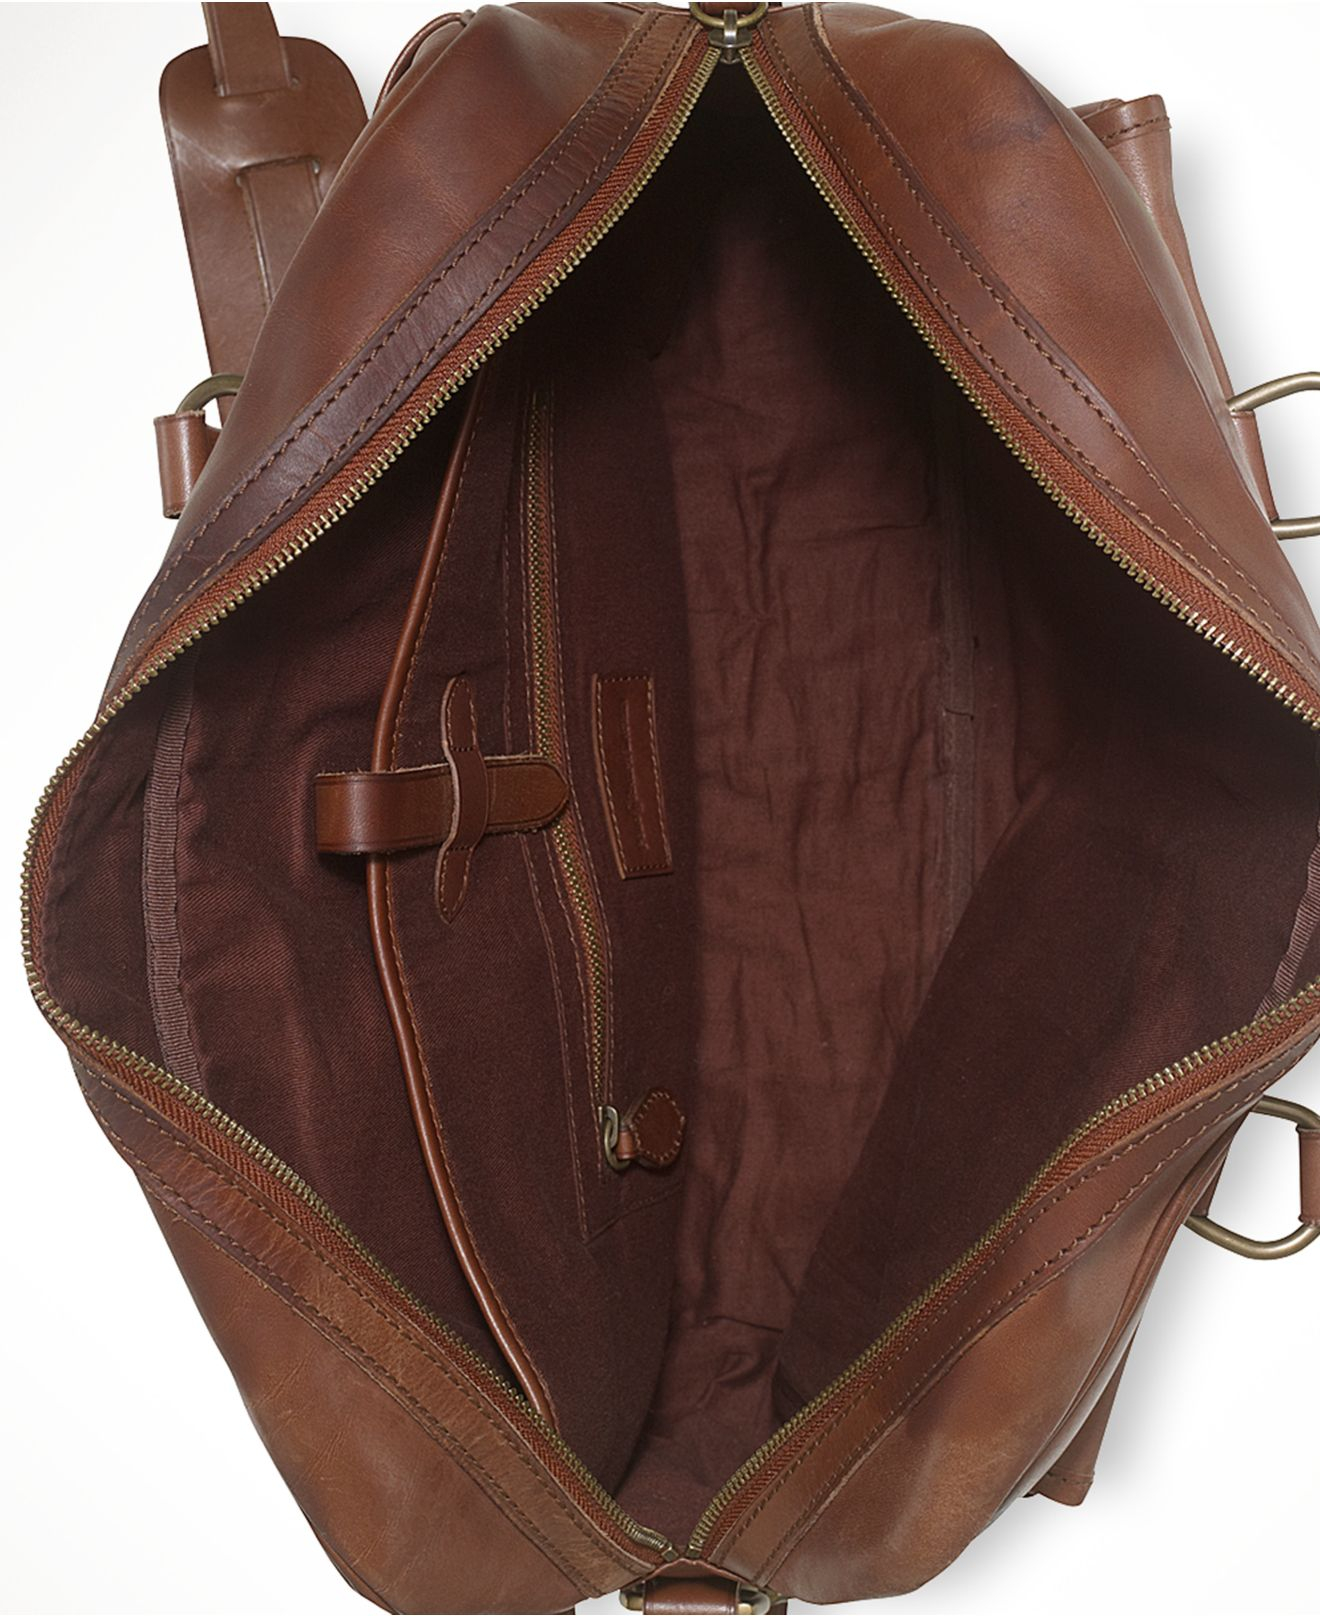 Lyst - Polo Ralph Lauren Leather Commuter Bag in Brown for Men 1c9ee5a7fd31f